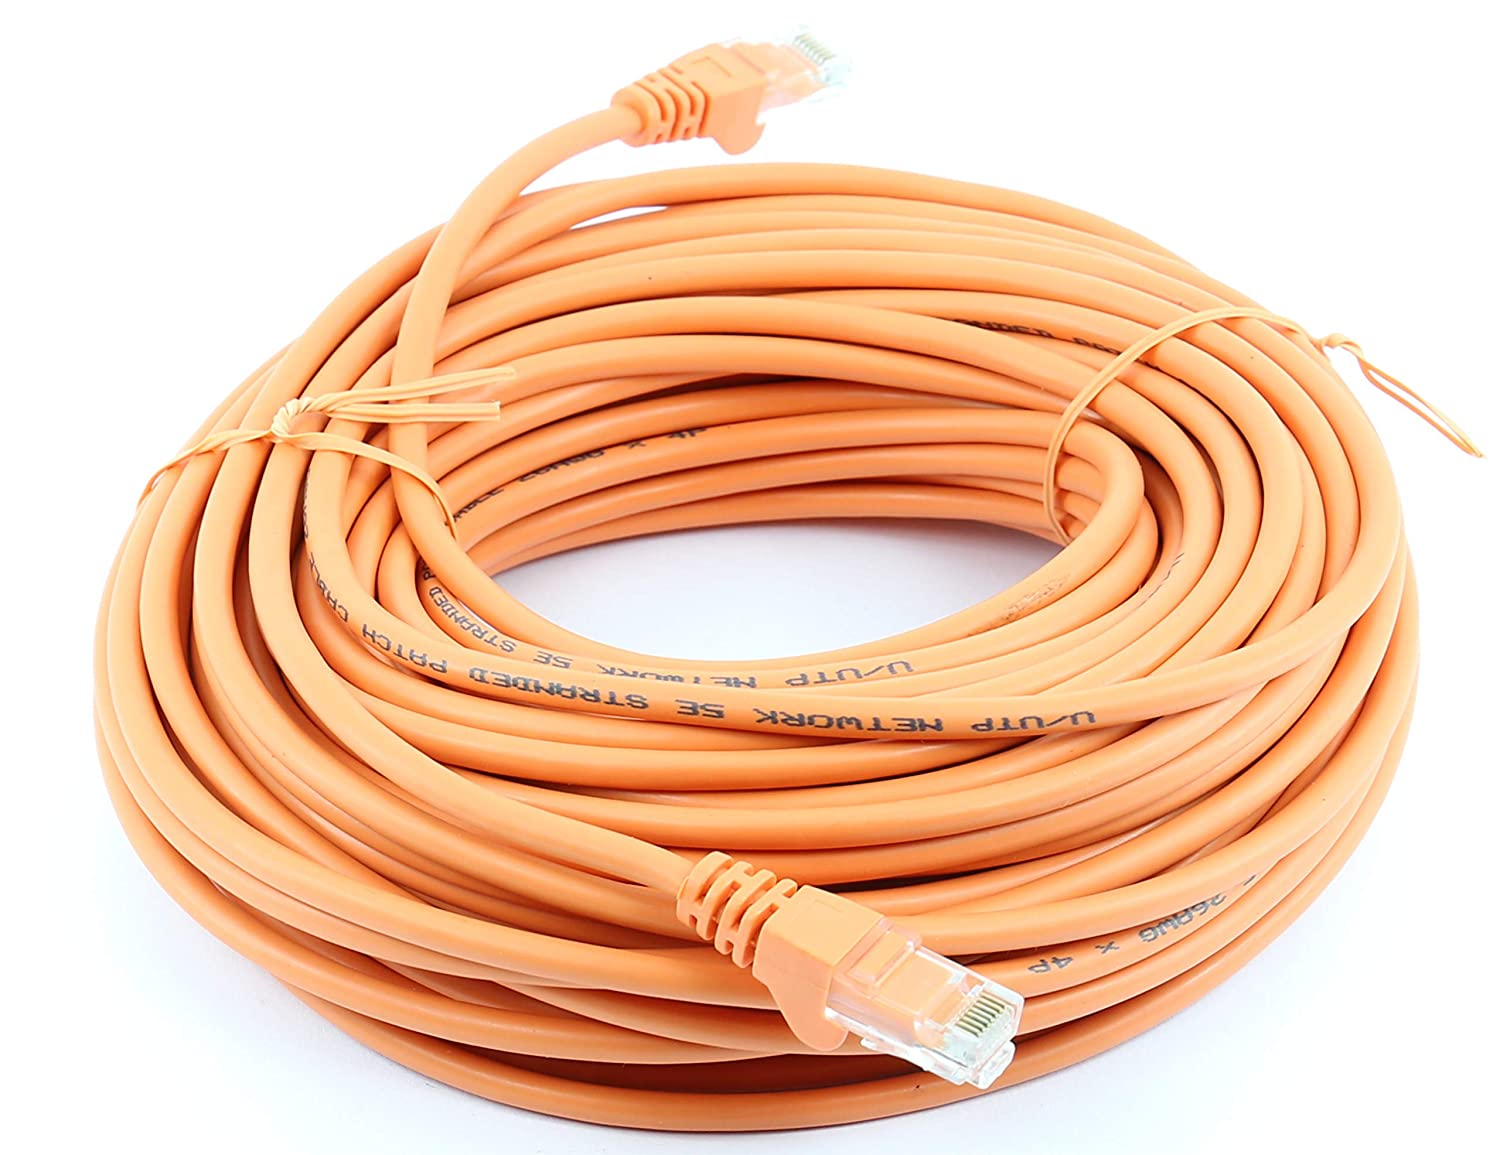 Network Cable Internet Fast Speed Lead 49 Foot Cat 5e Cat5e Ethernet RJ45 High Speed